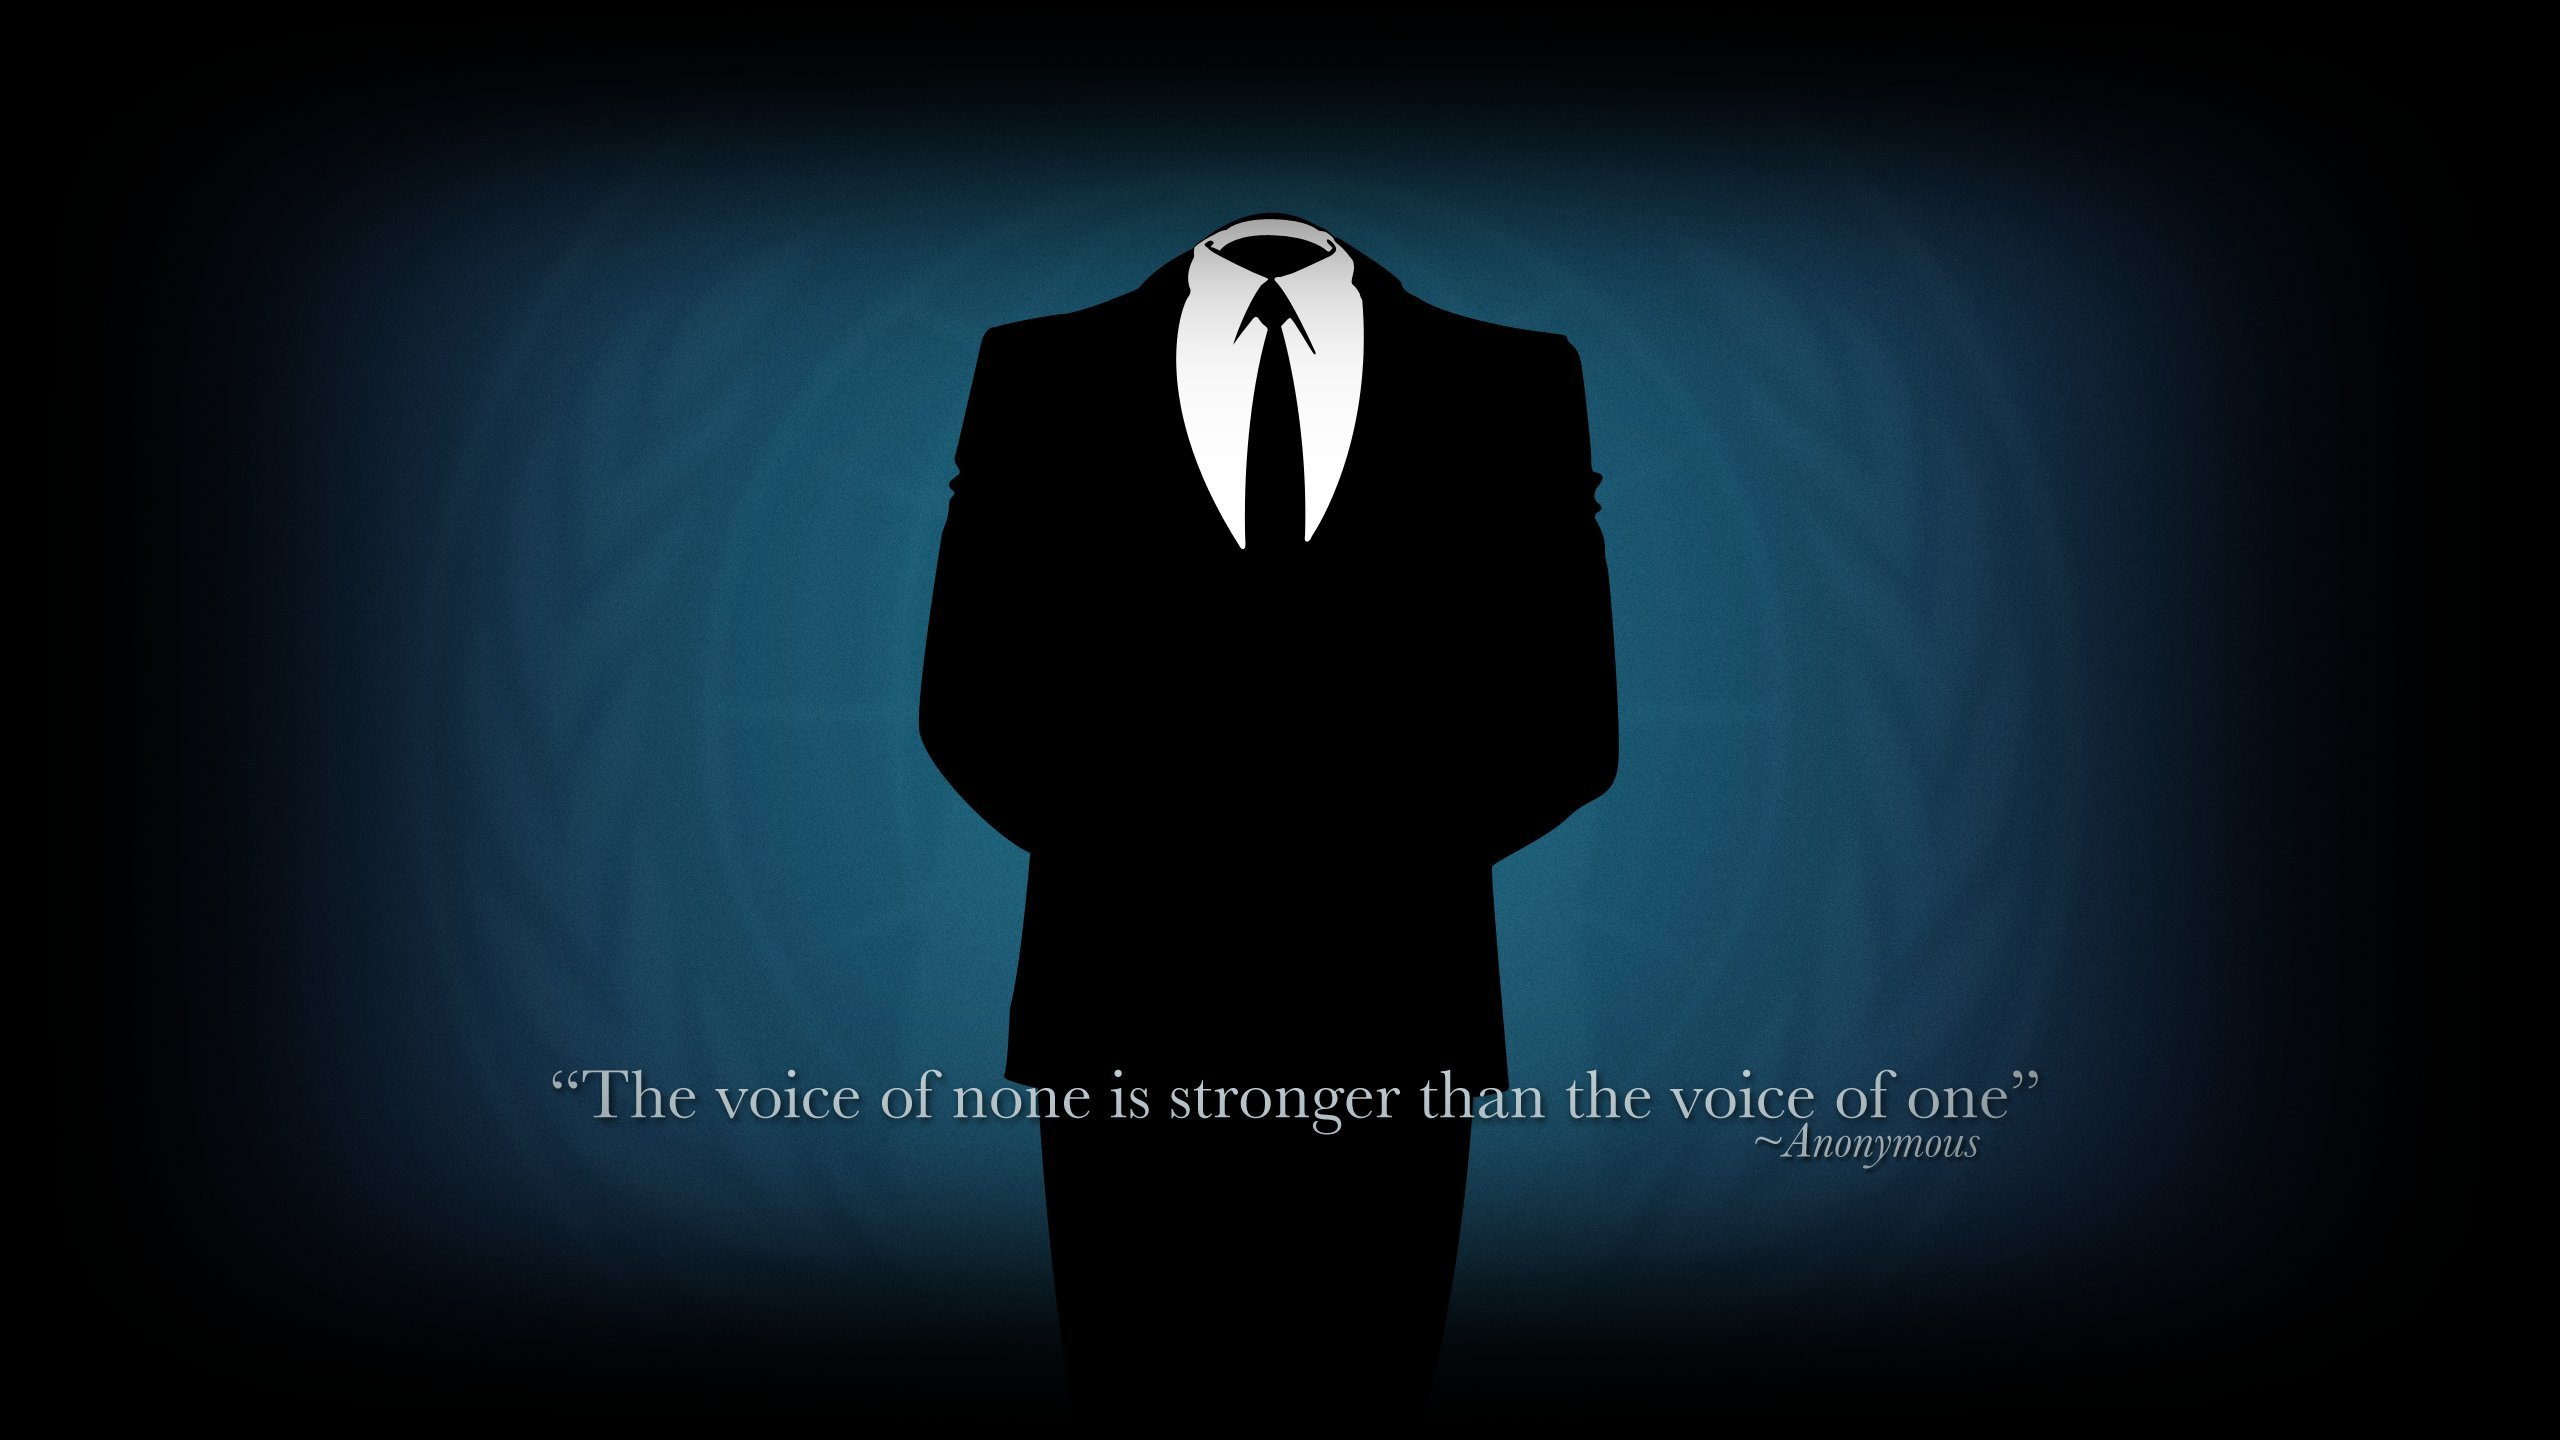 Anonymous Wallpapers HD  PixelsTalk Anonymous Wallpapers HD  PixelsTalk Anonymous Wallpaper 2560x1440